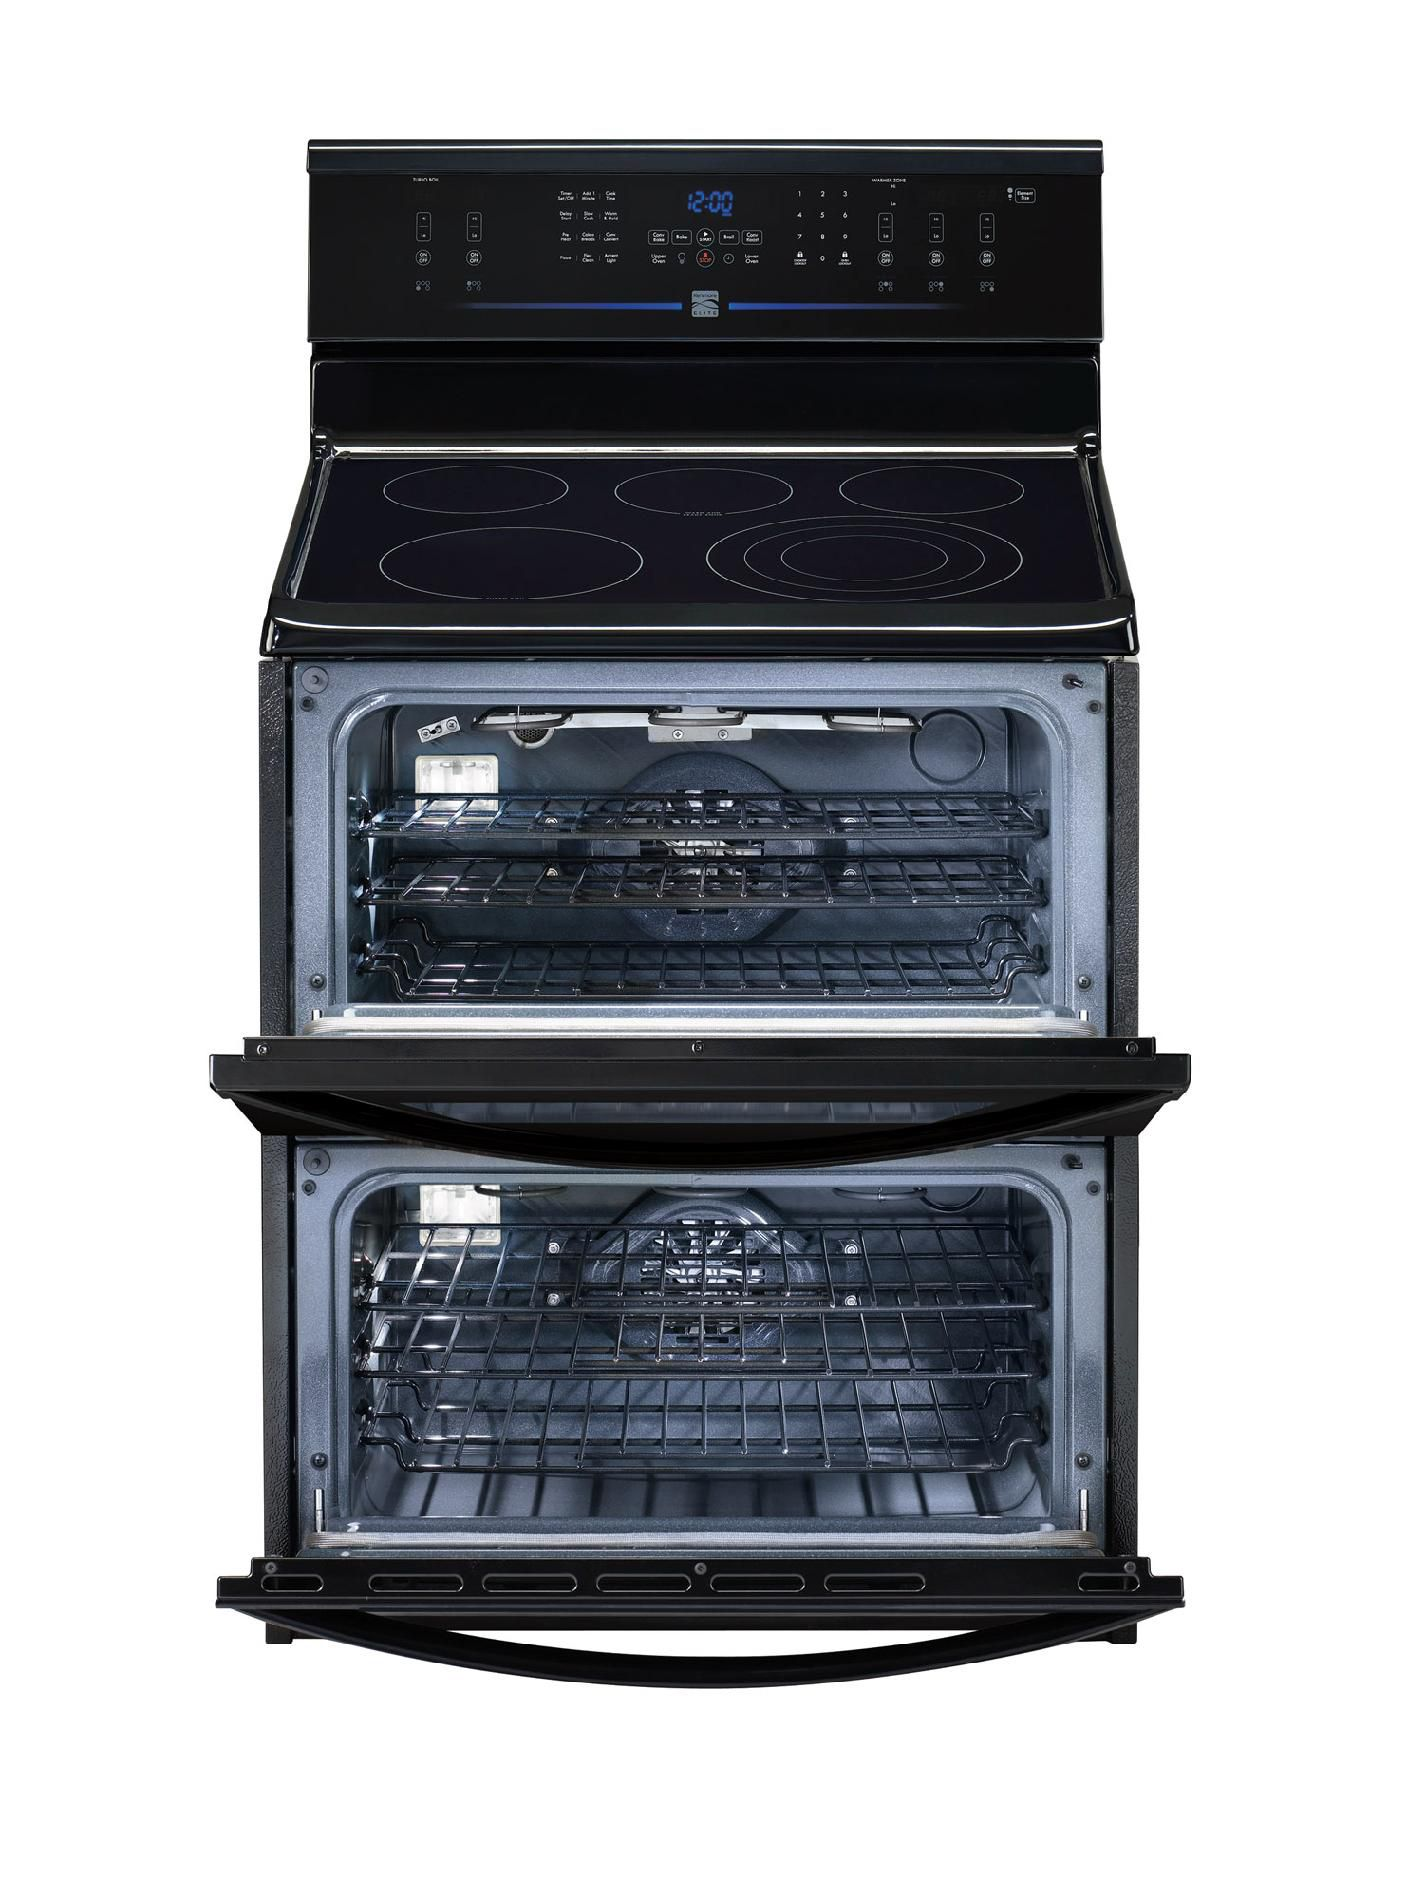 Kenmore Elite 7.0 cu. ft. Double-Oven Electric Range - Black